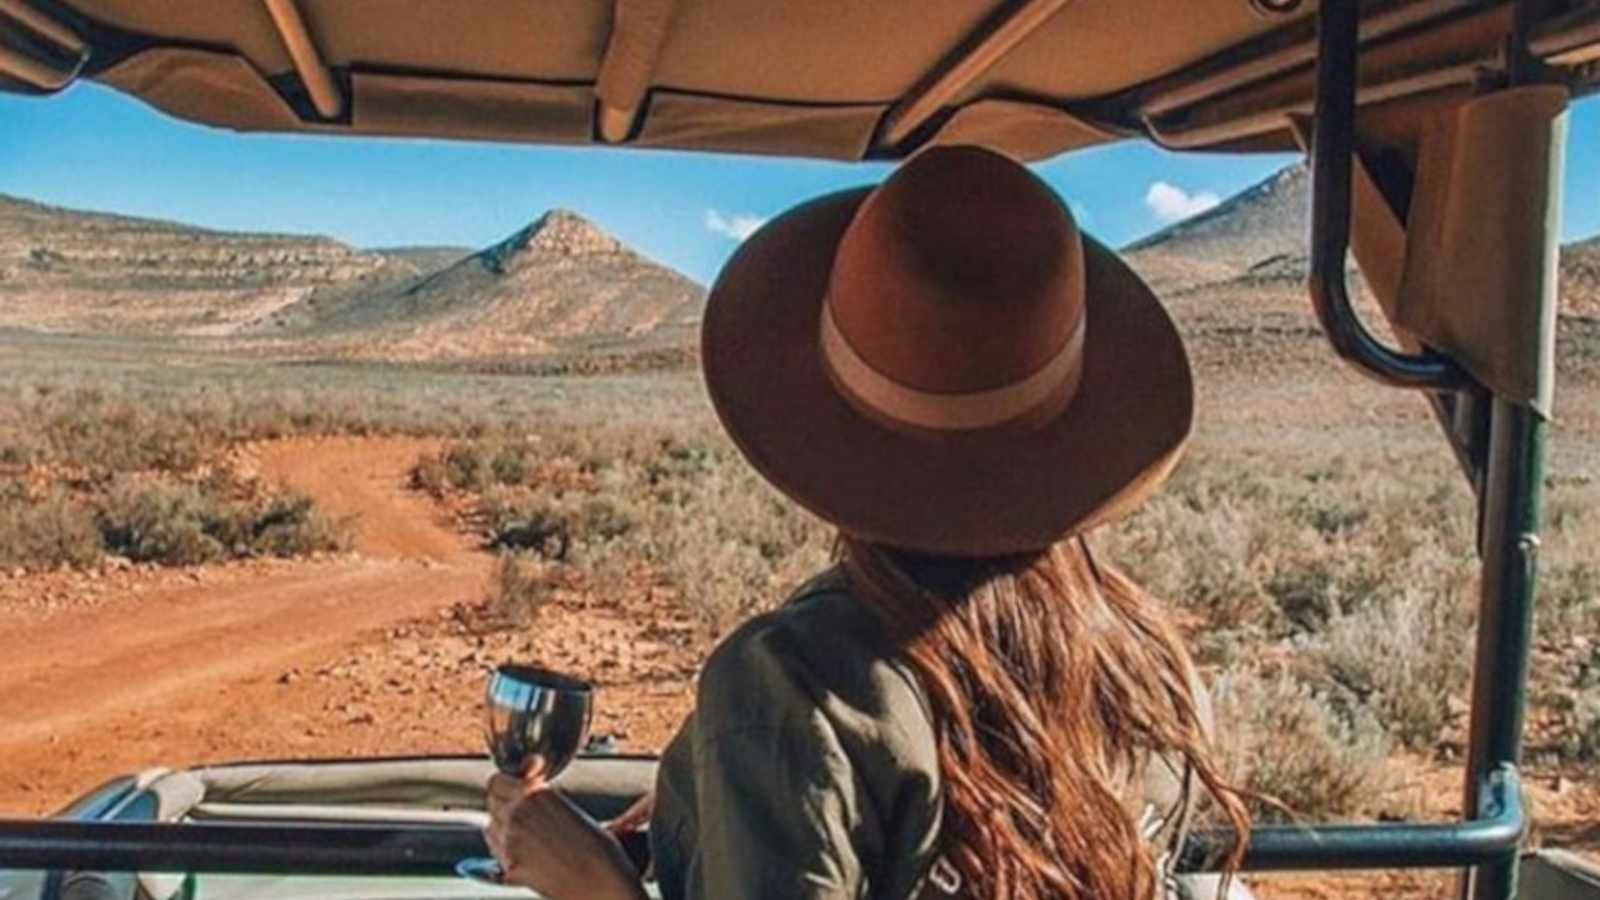 Celebrate Women's Day with a luxurious getaway close to home